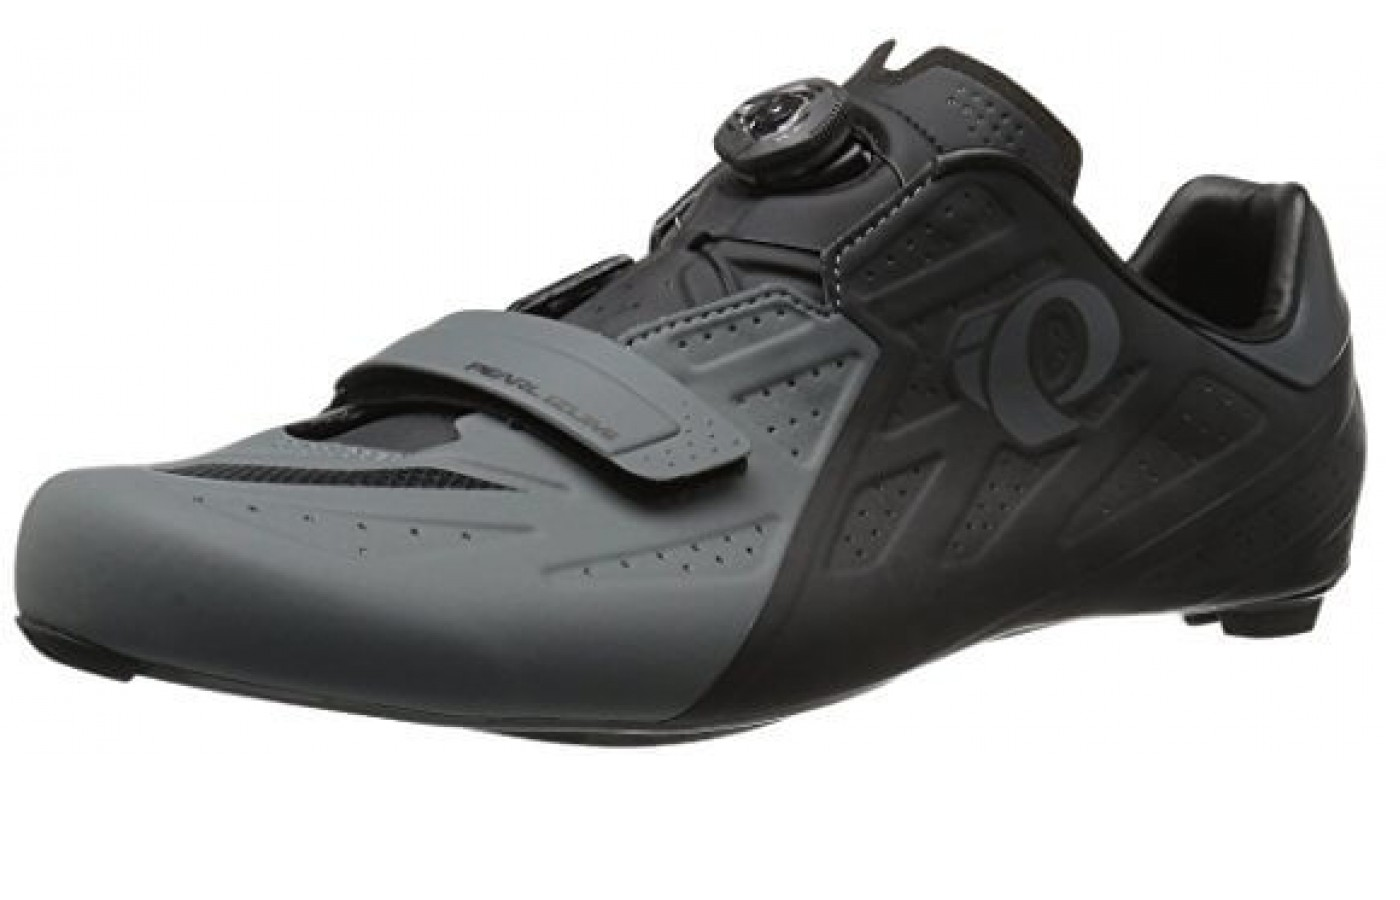 The Pearl Izumi Elite Road V5 is made especially for cycling